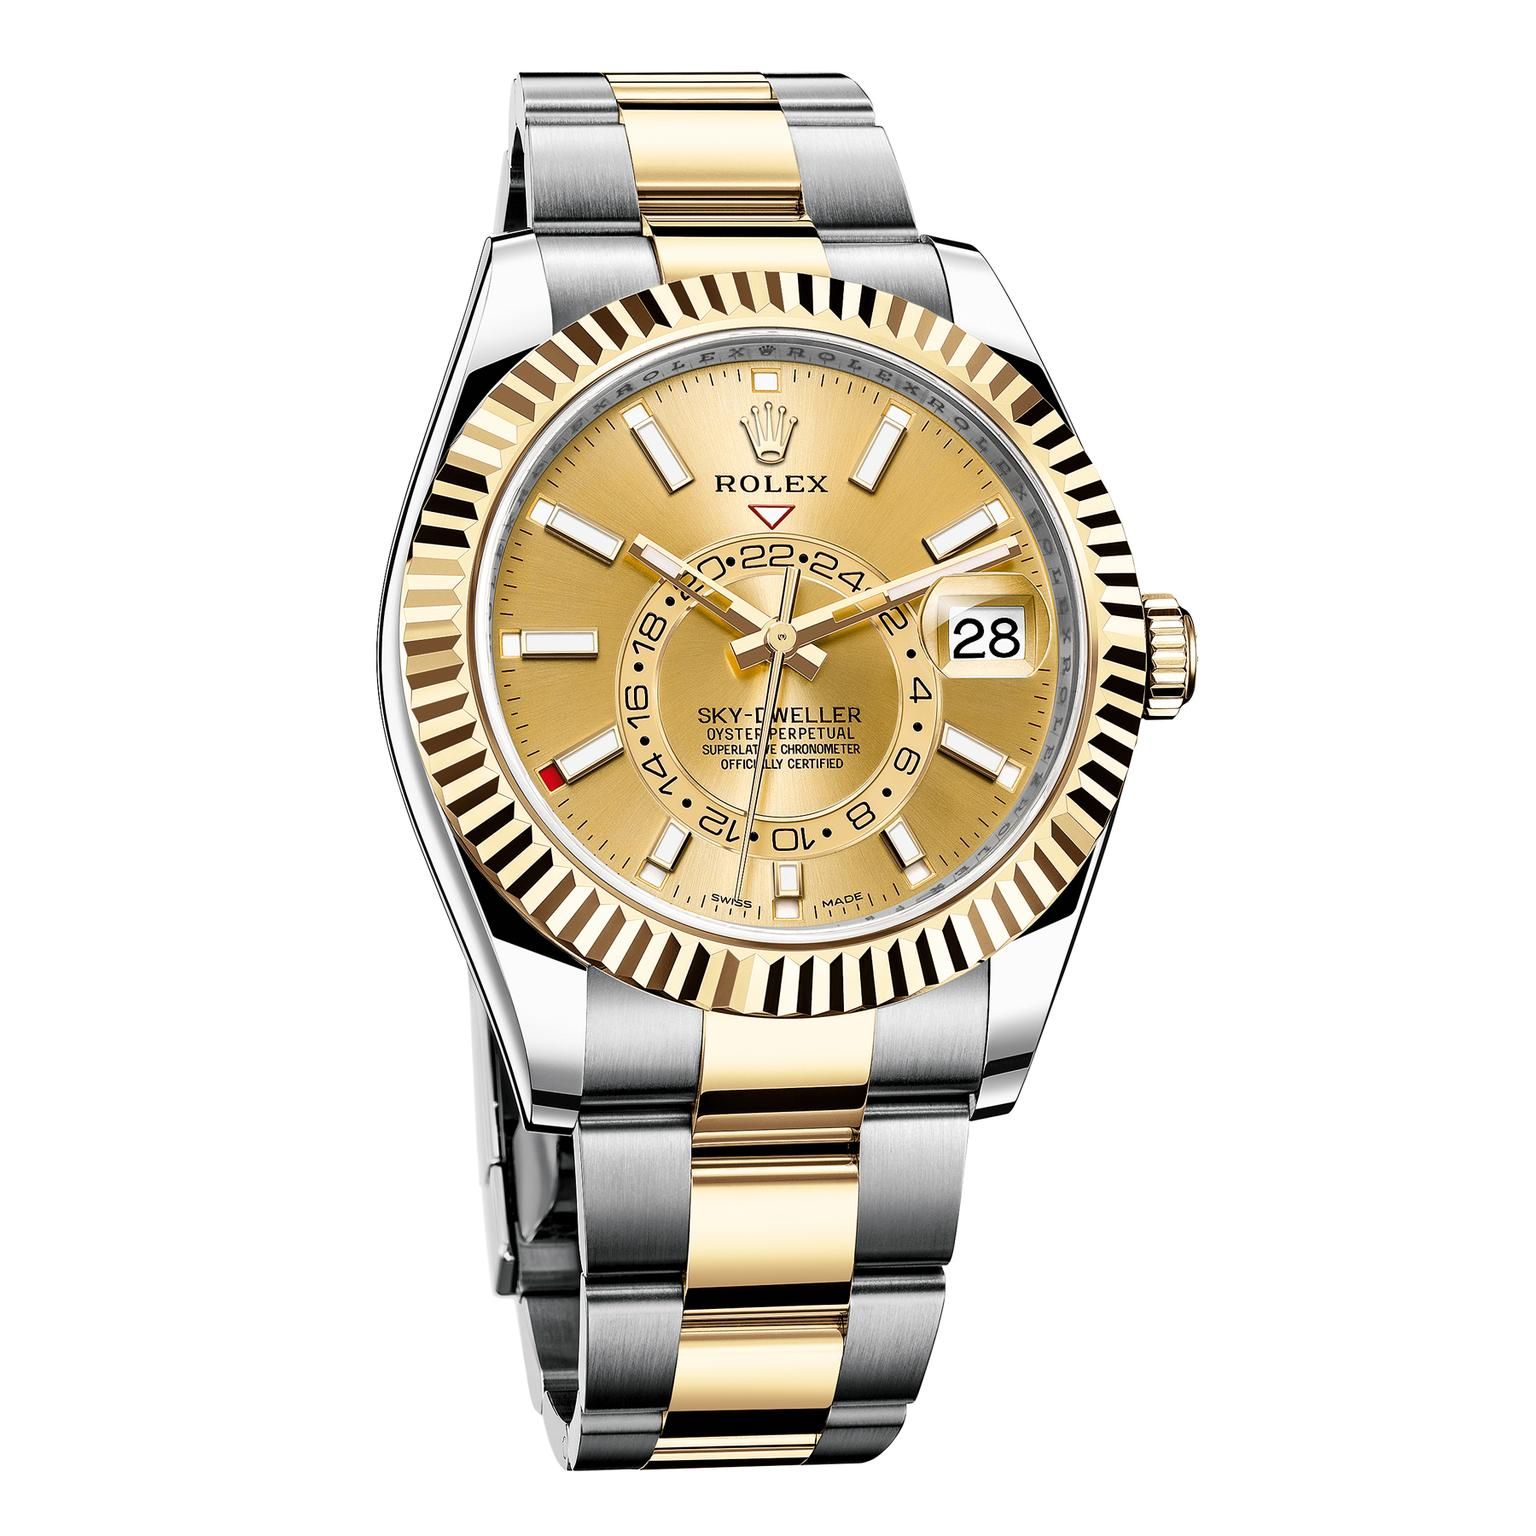 Rolex Sky-Dweller yellow Rolesor watch